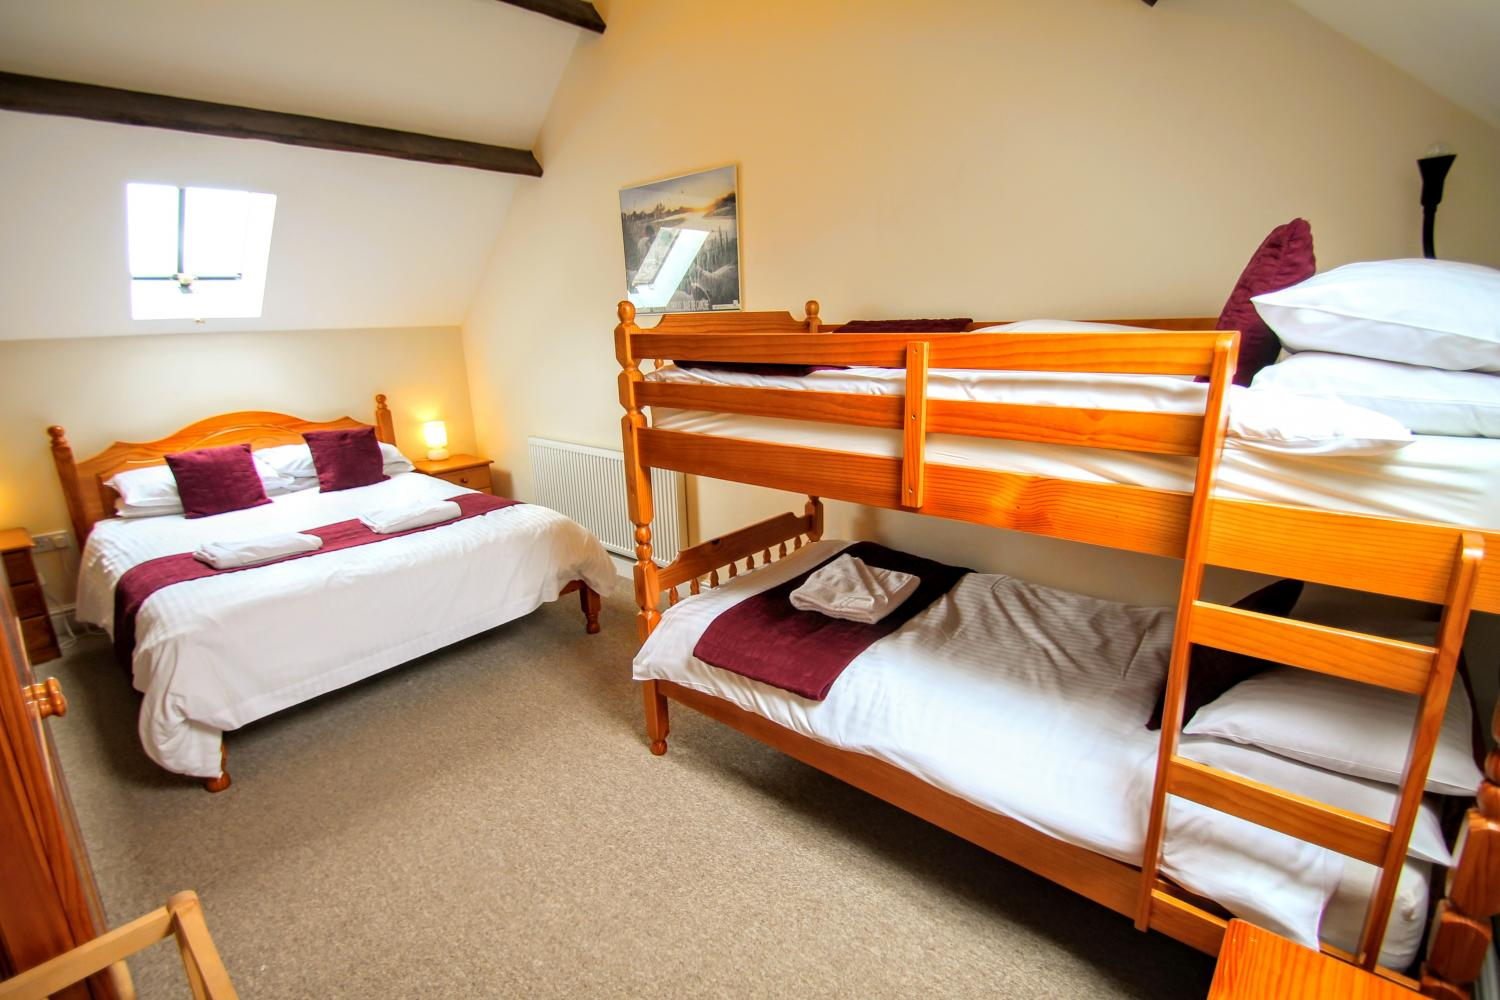 Double and bunk bed accommodation at Yenworthy Mill